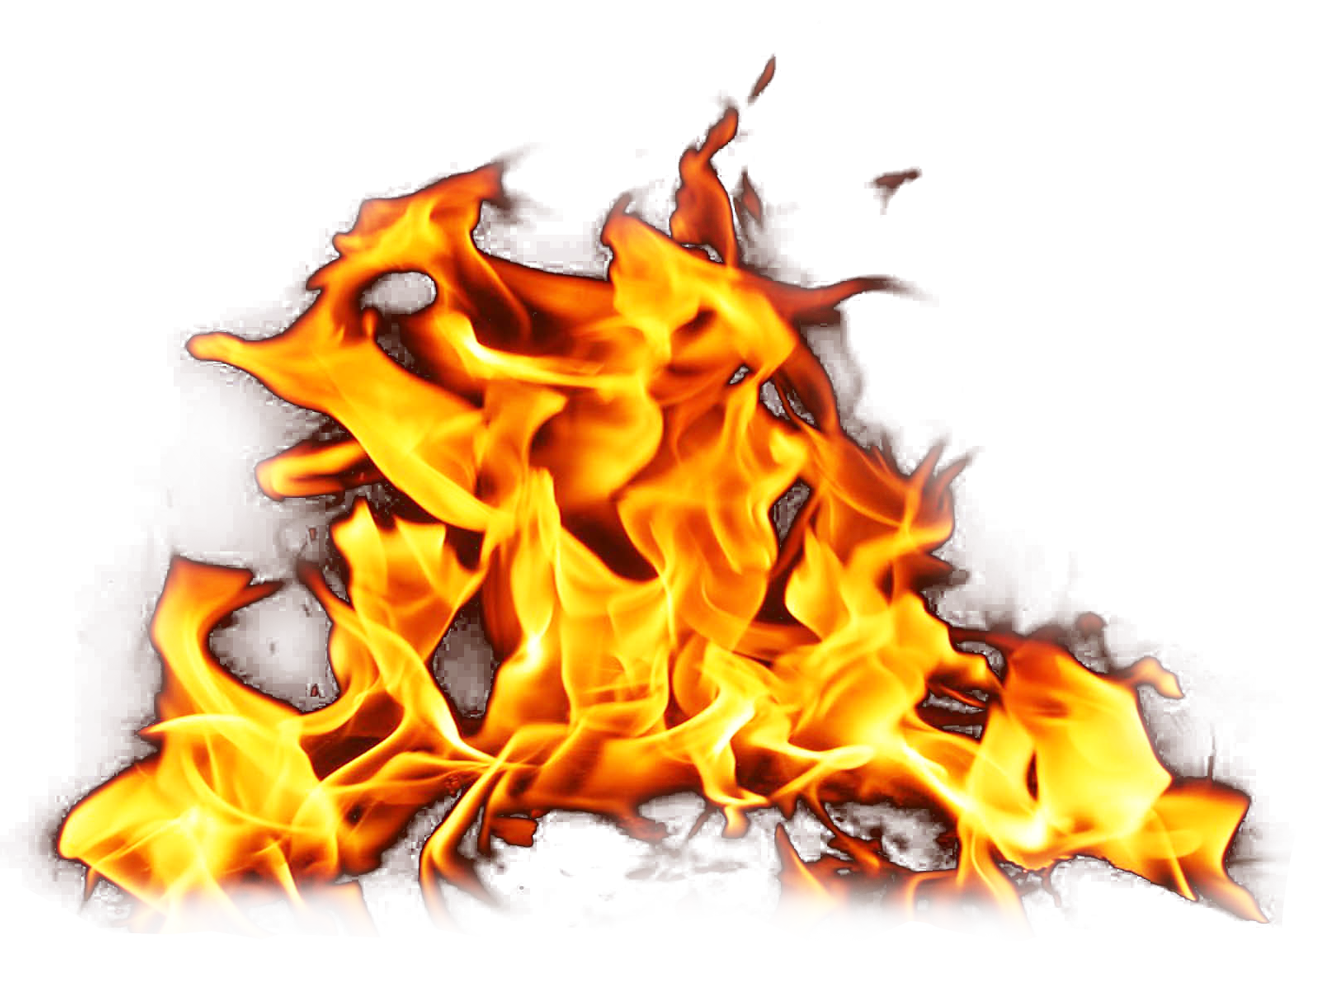 Blaze Fire Flame PNG Image